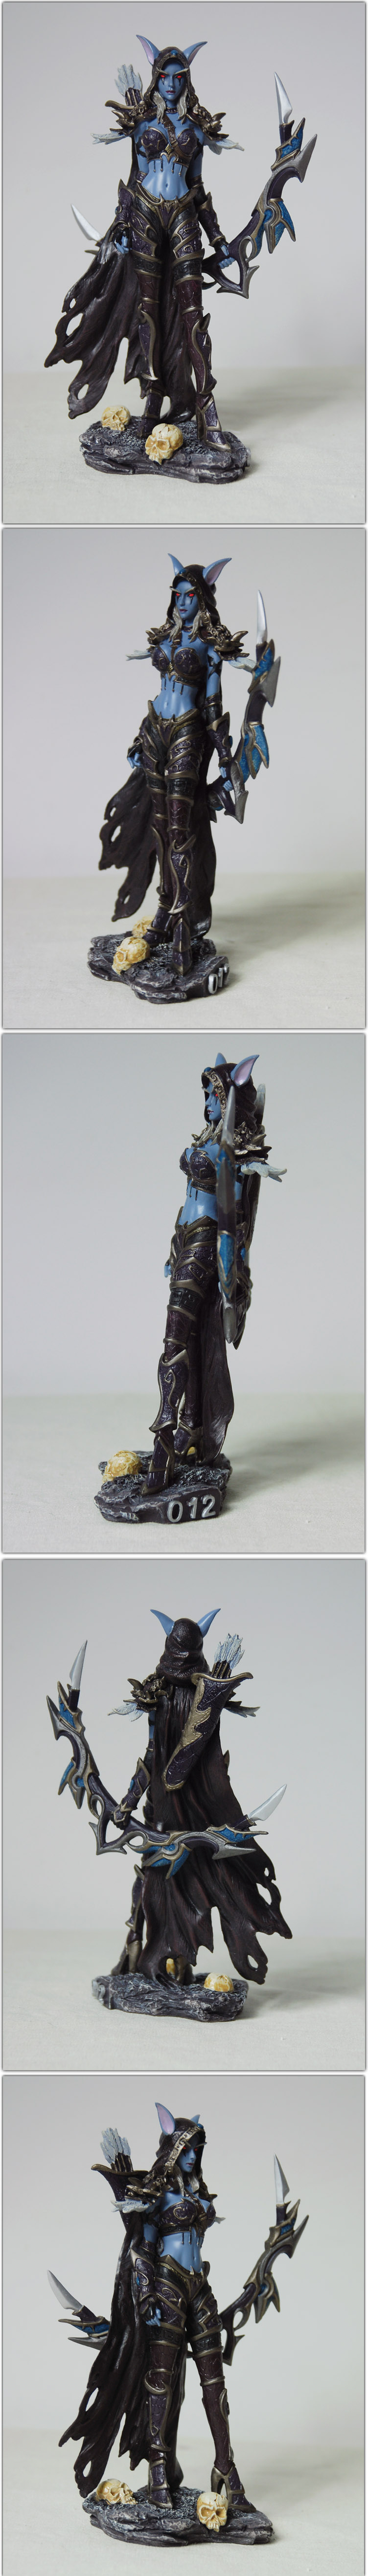 Dota 2 Drow Ranger Action Figure Model